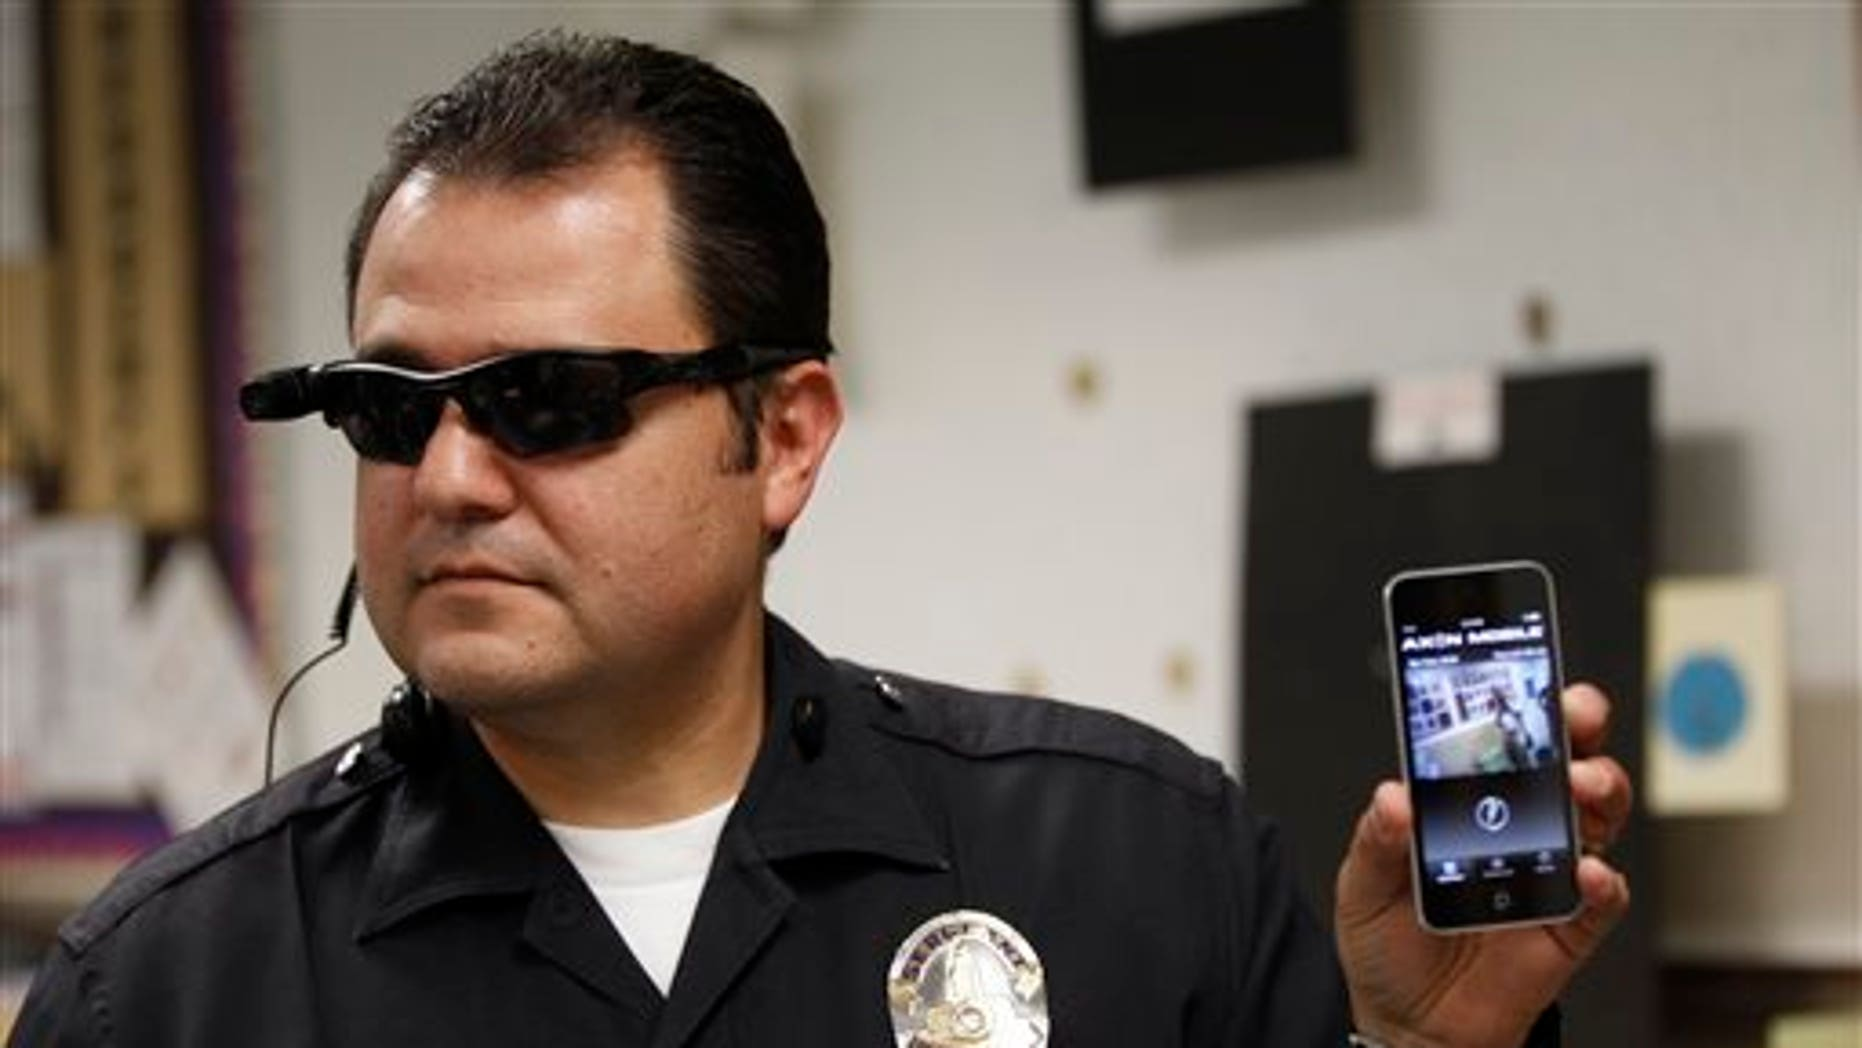 This Jan. 15, 2014 file photo shows Los Angeles Police Sgt. Daniel Gomez demonstrating a video feed from his camera into his cellphone as on-body cameras are demonstrated for the media in Los Angeles. Thousands of police agencies have equipped officers with cameras to wear with their uniforms, but theyve frequently lagged in setting policies on how theyre used, potentially putting privacy at risk and increasing their liability. As officers in one of every six departments across the nation now patrols with tiny lenses on their chests, lapels or sunglasses, administrators and civil liberties experts are trying to envision and address troublesome scenarios that could unfold in front of a live camera. (AP Photo/Damian Dovarganes)